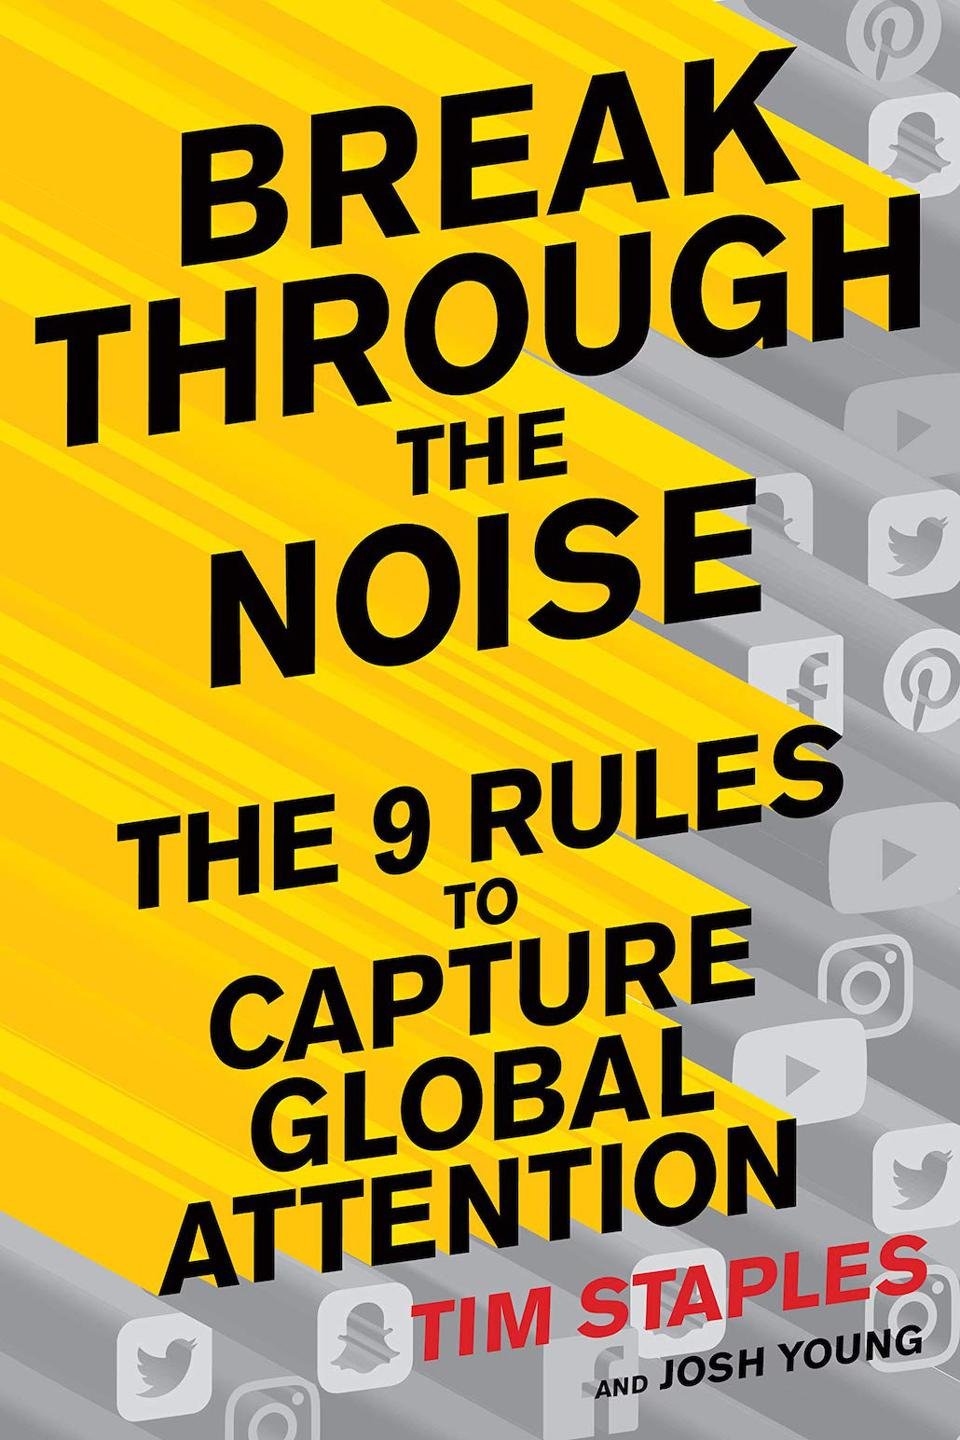 Break Through the Noise: The Nine Rules to Capture Global Attention by Tim Staples and Josh Young